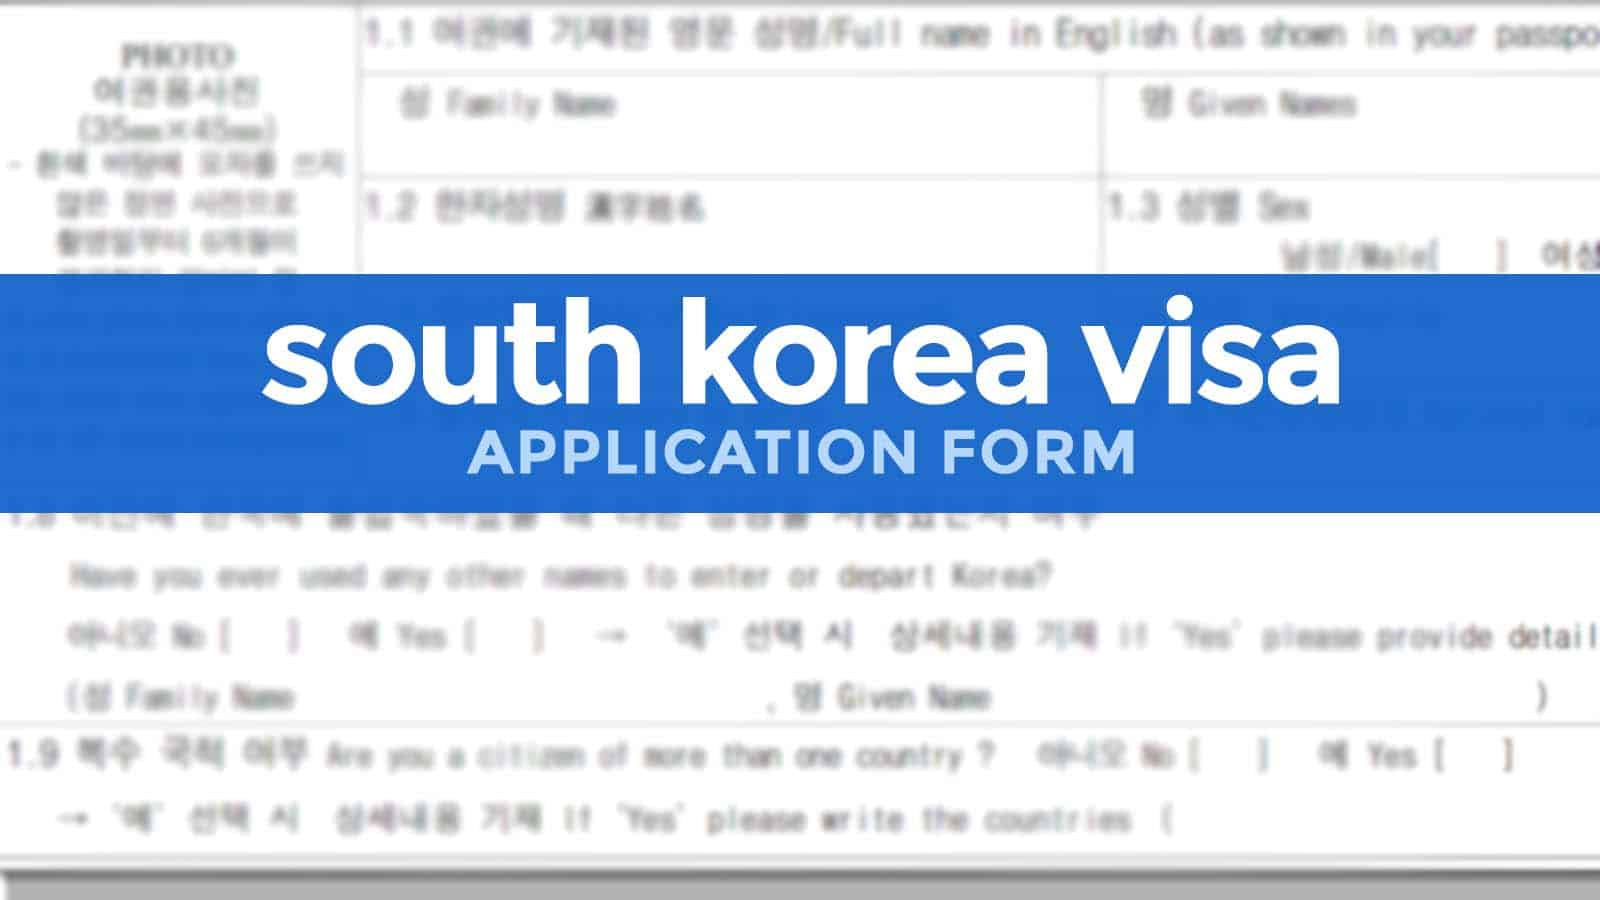 SOUTH KOREA VISA APPLICATION FORM